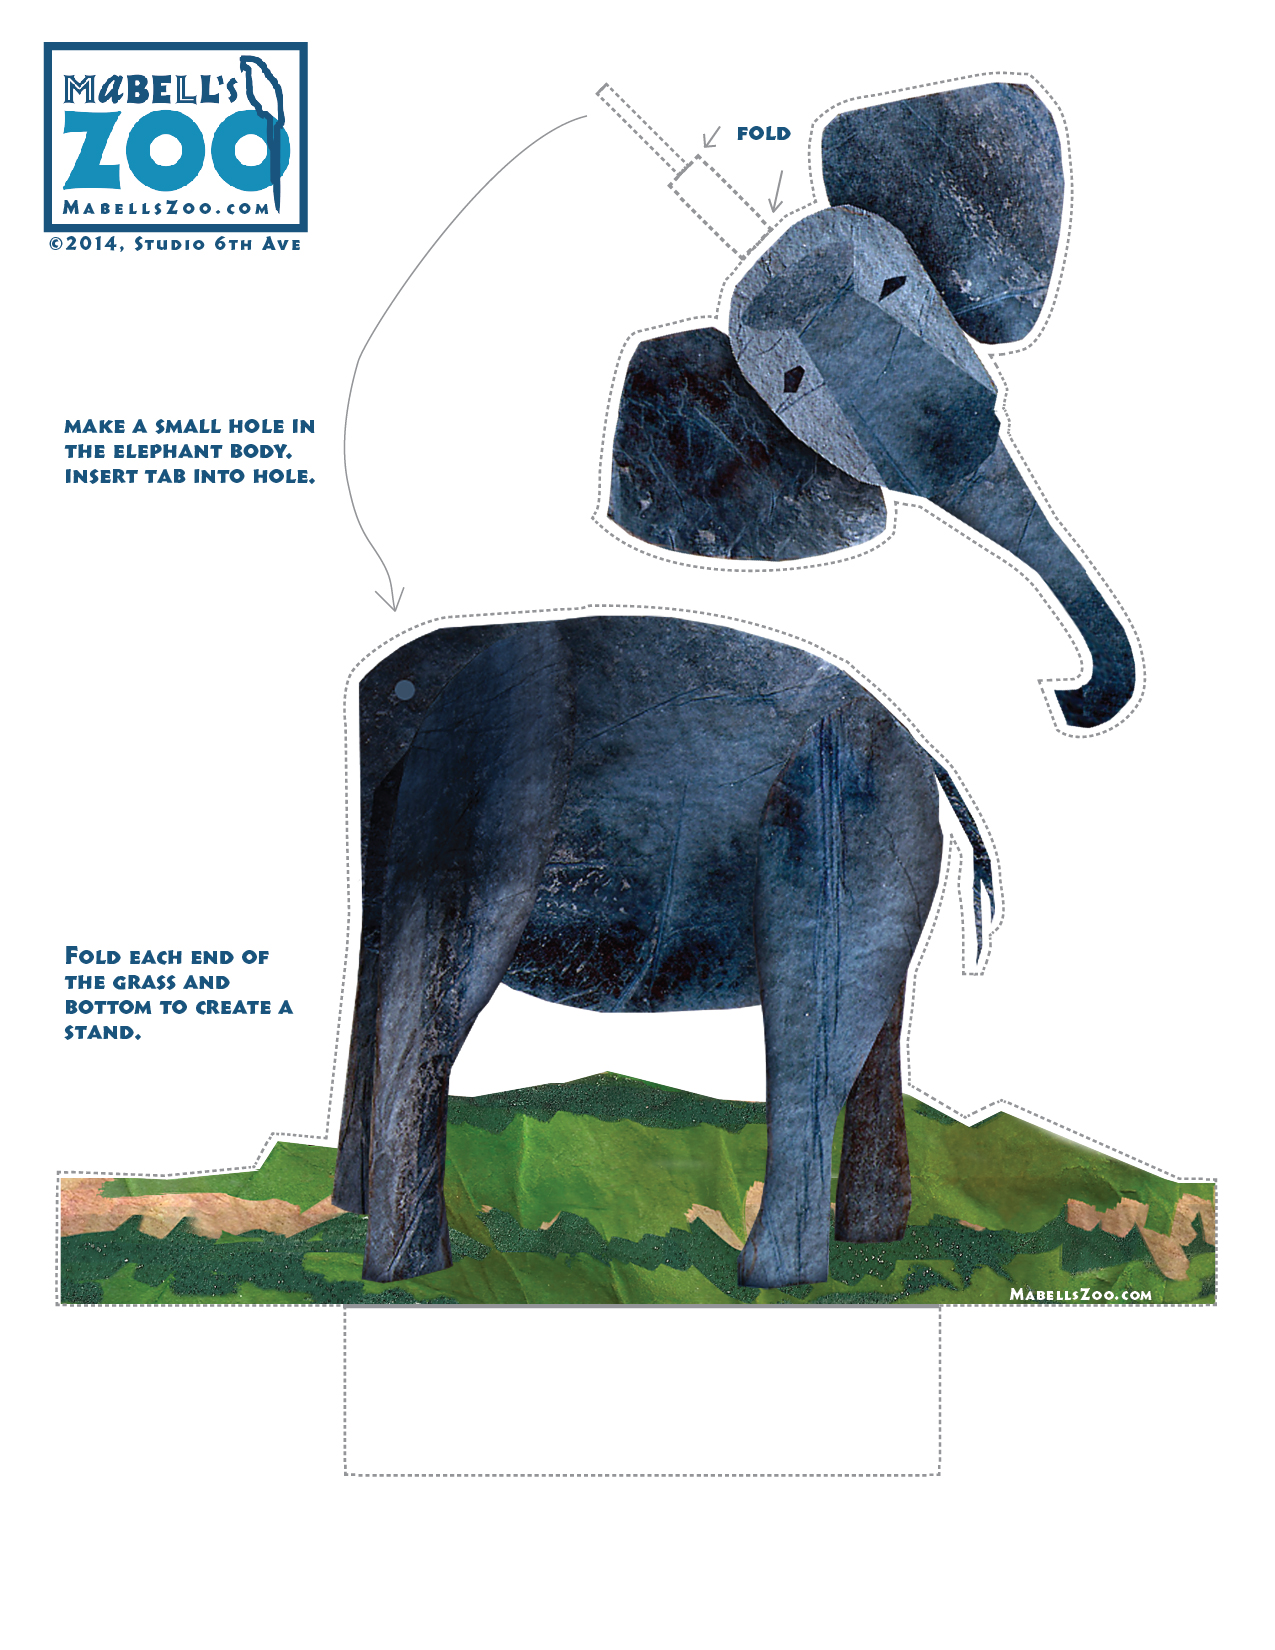 Mabell's Zoo Cutouts: One Elephant